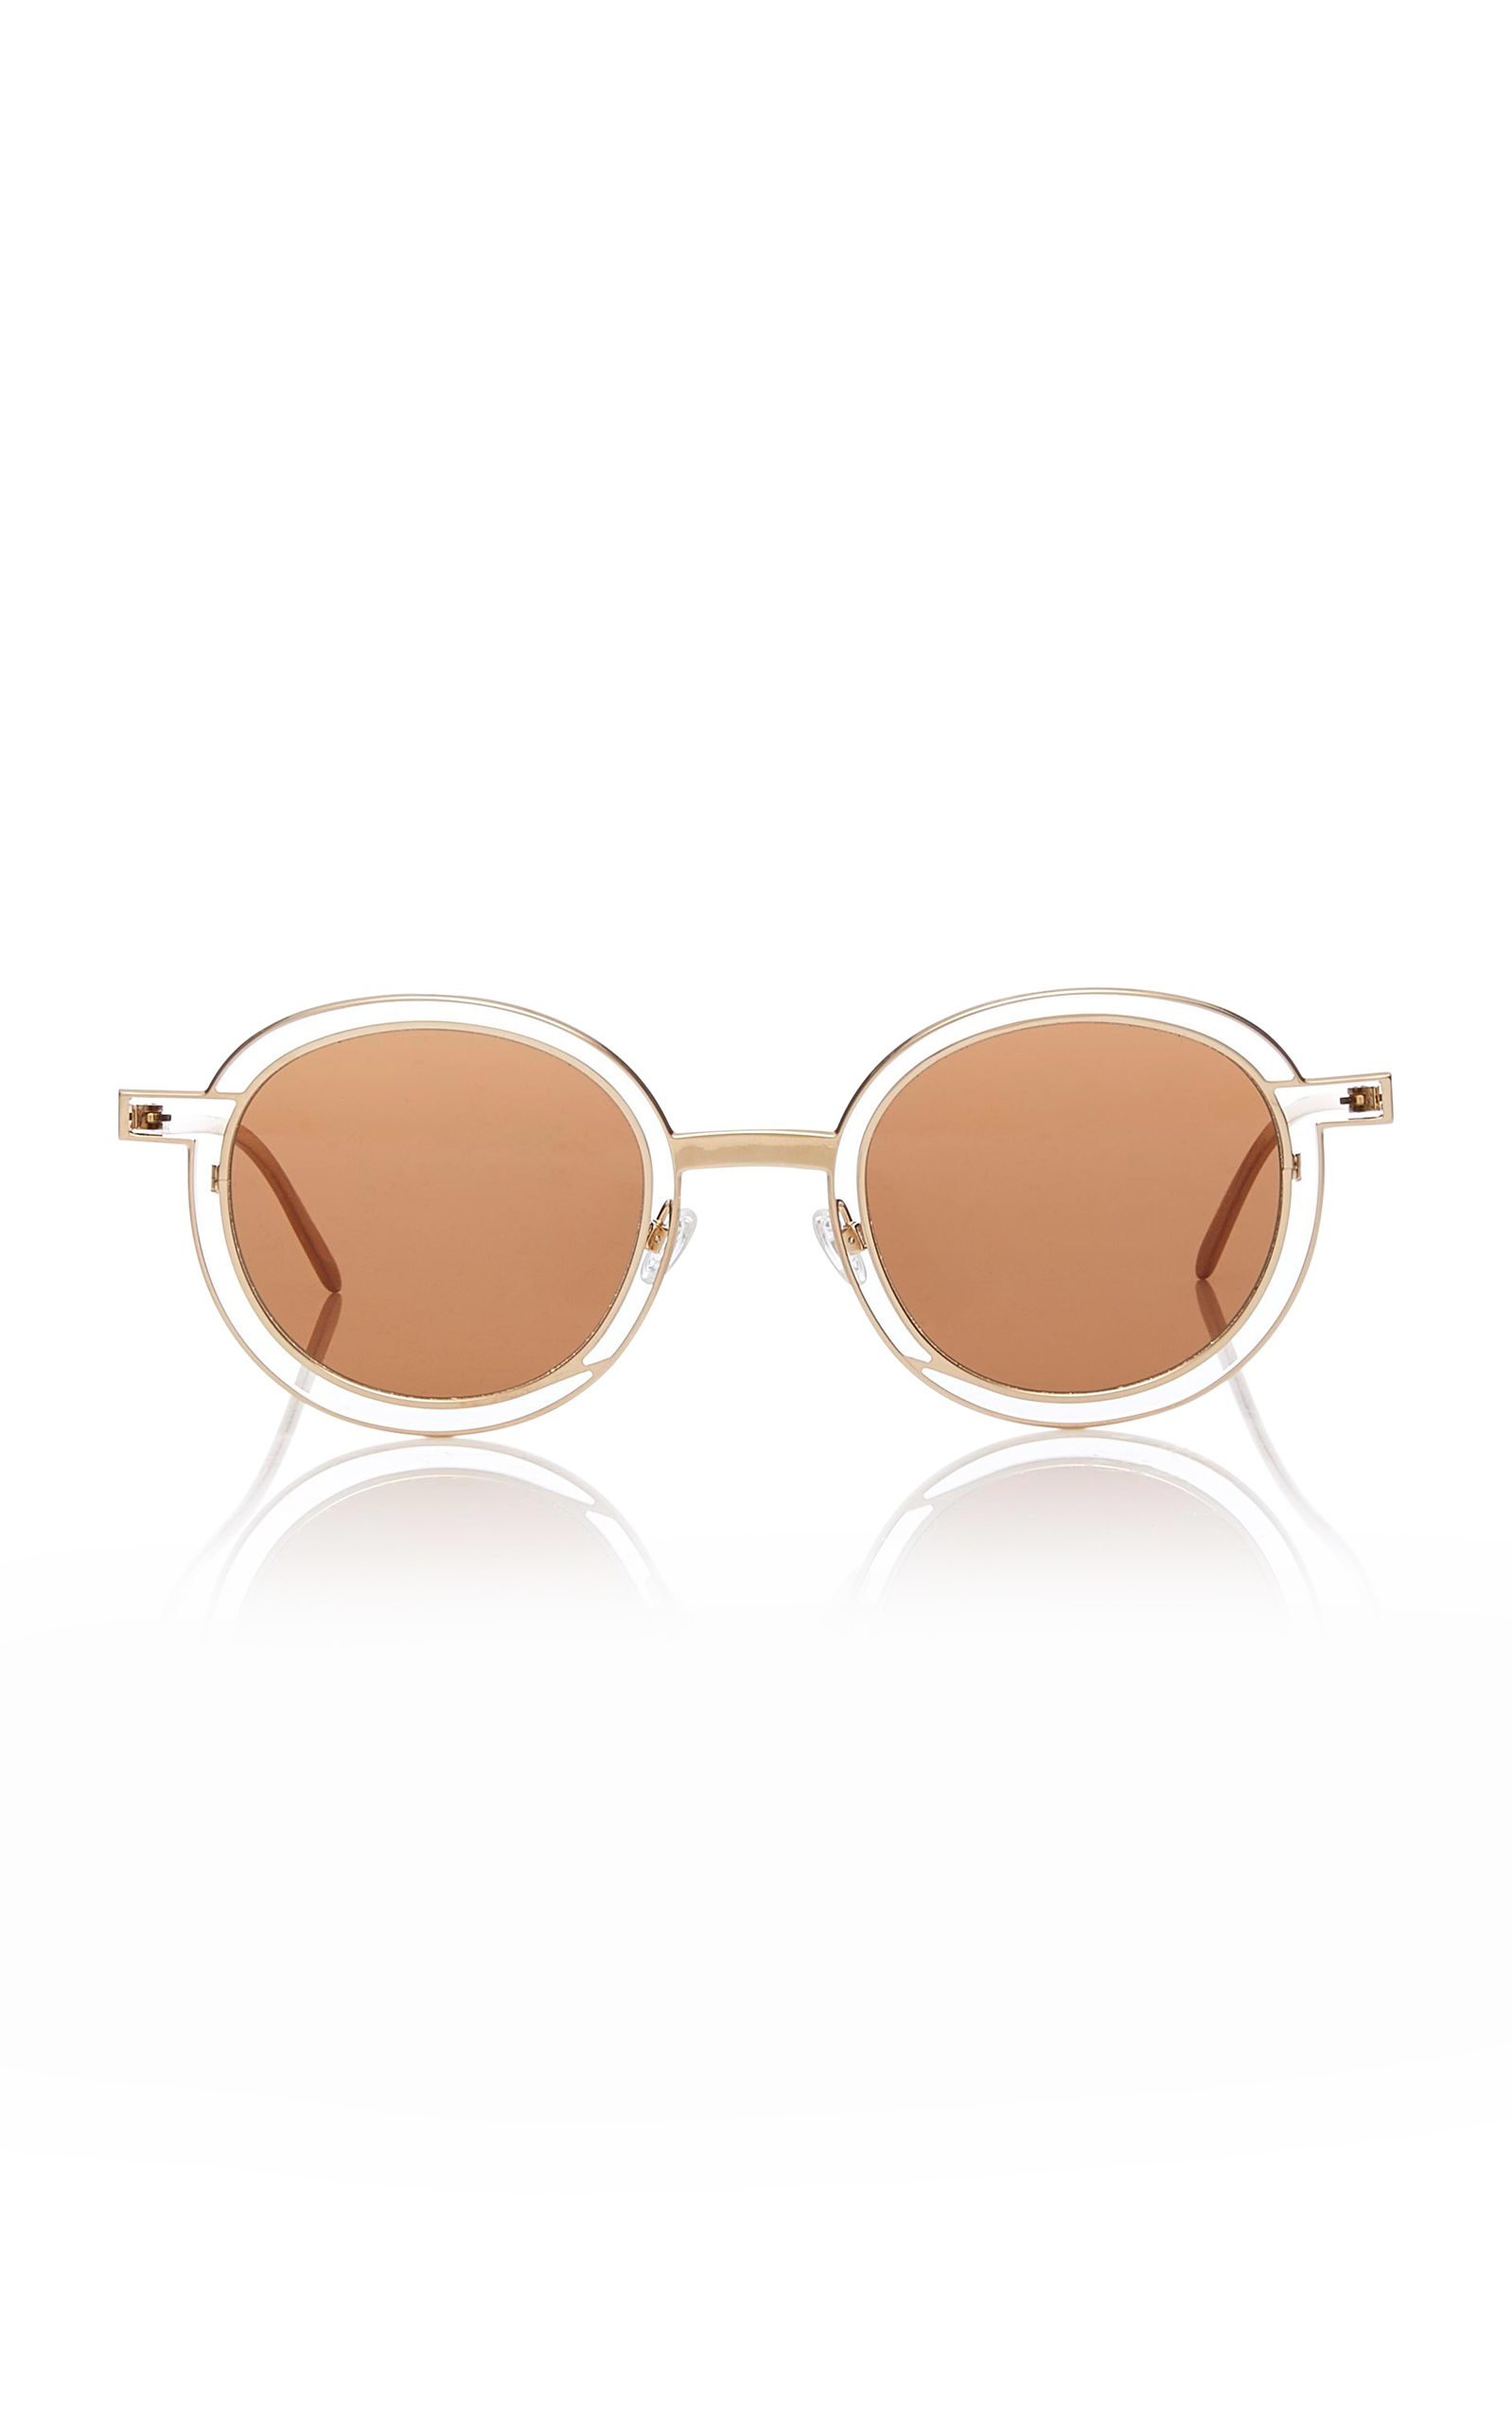 Probably Gold-Tone Round-Frame Sunglasses Thierry Lasry N95mpg